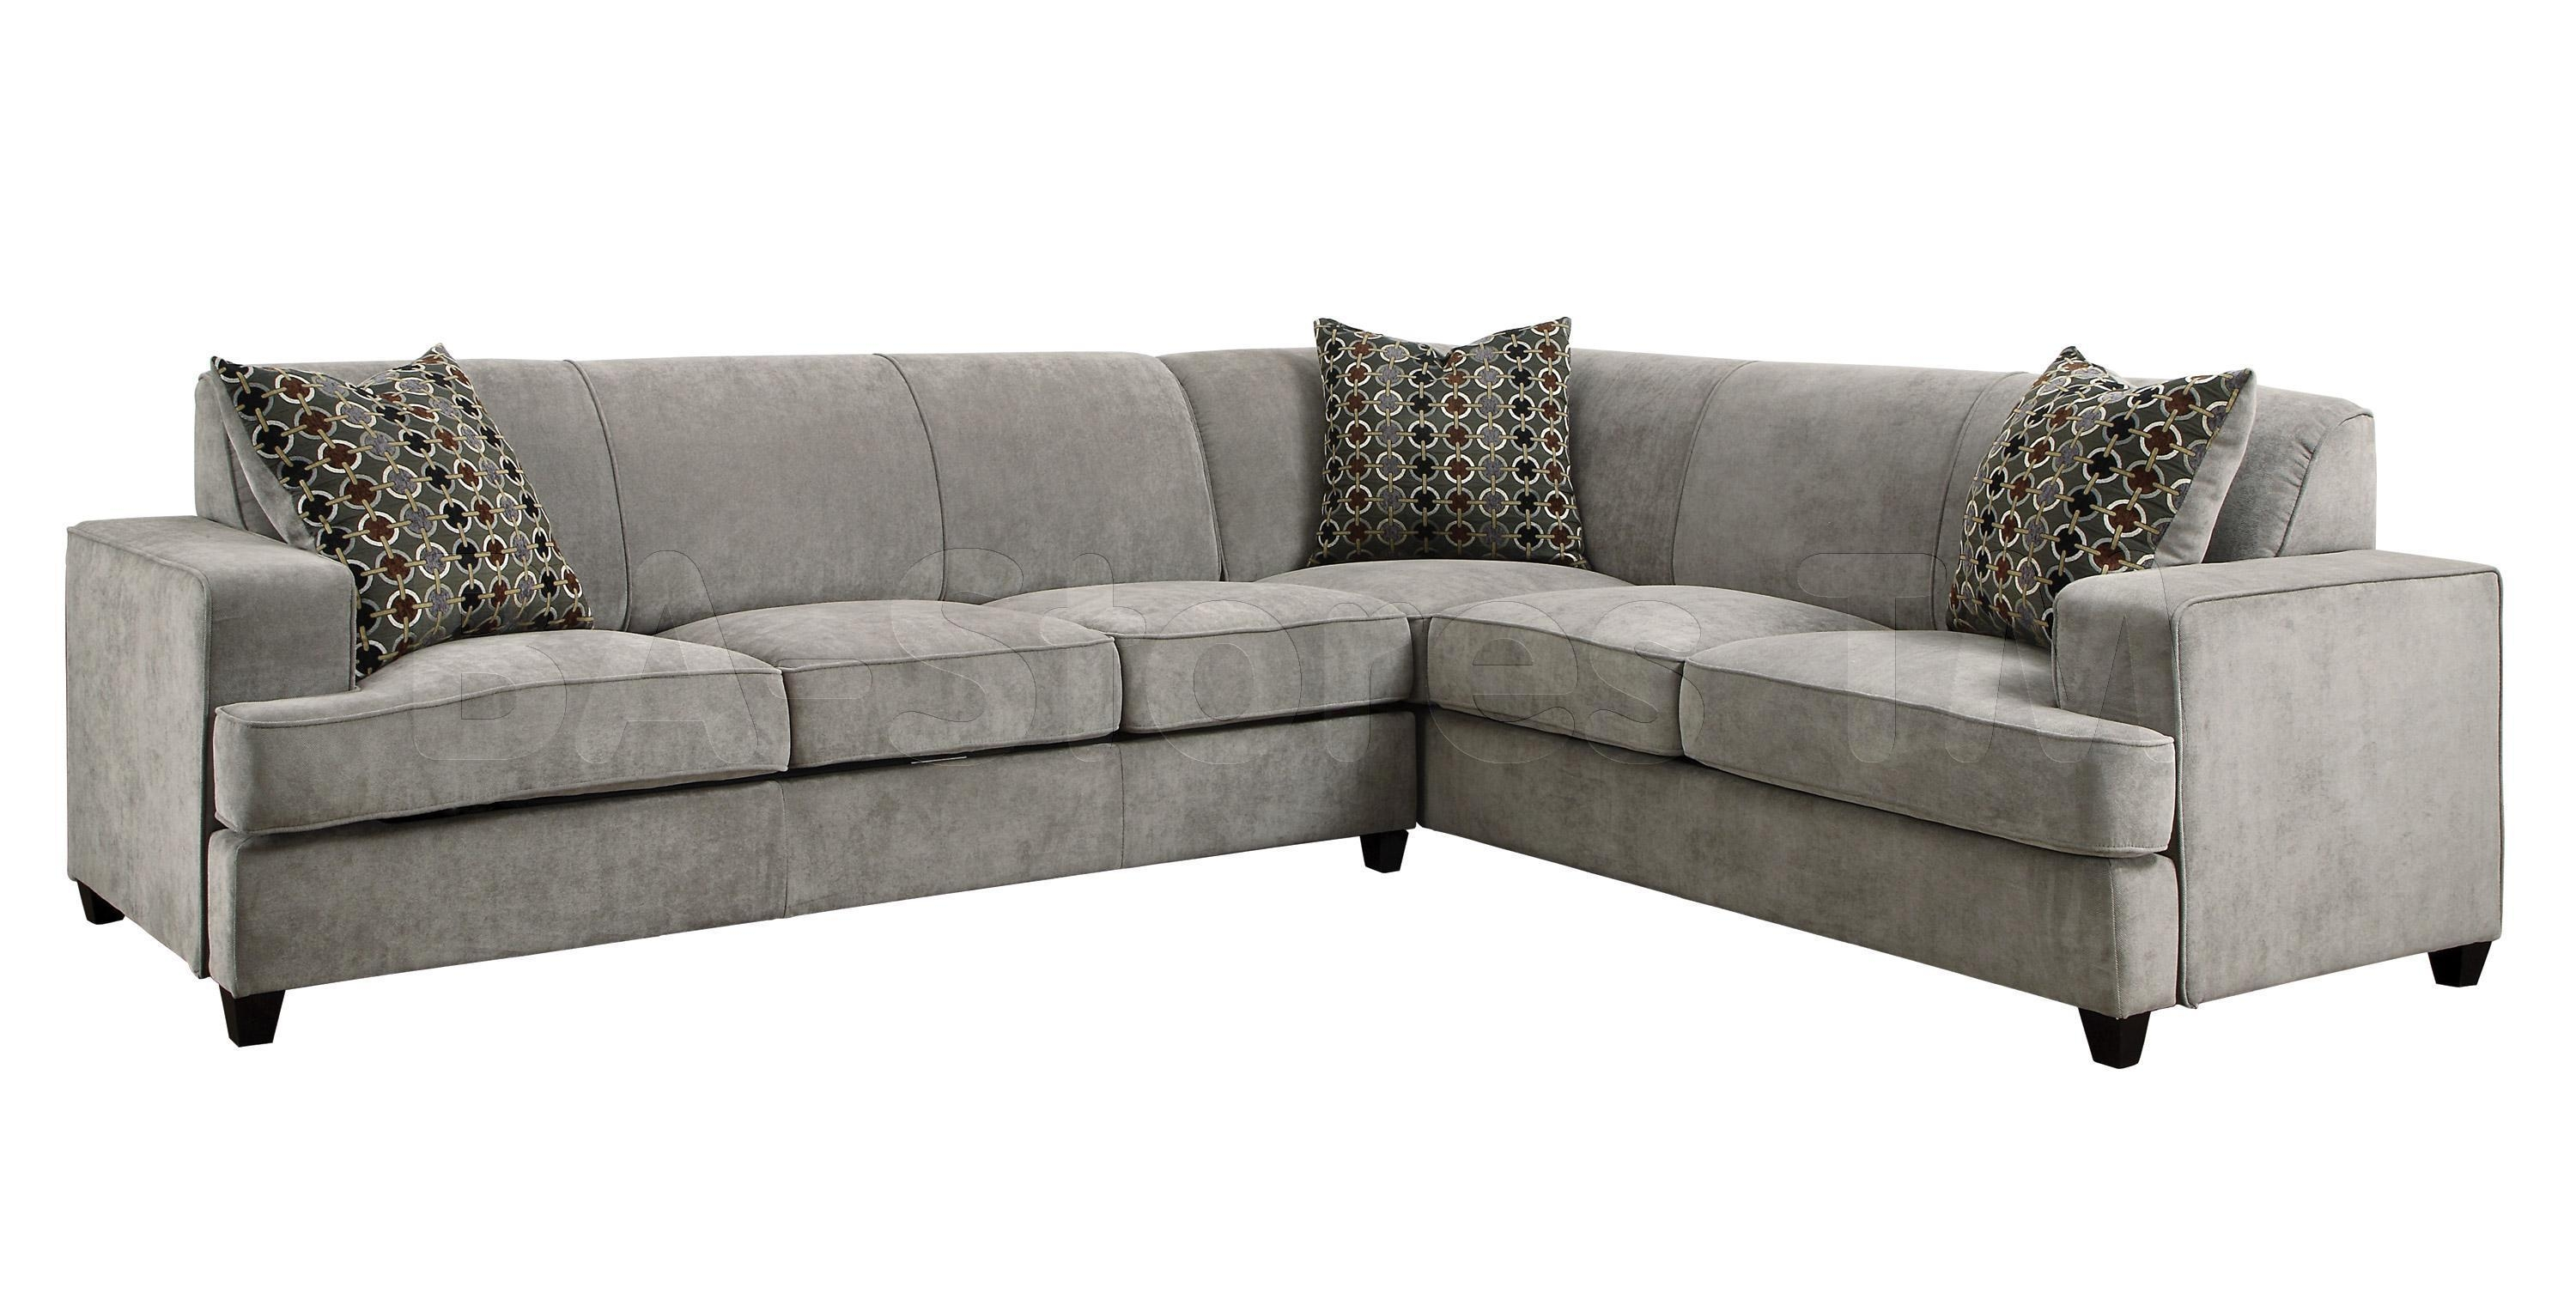 Sofas Center Charcoal Grey Sectional Sofa Cleanupflorida Com – Ftfpgh Regarding Charcoal Gray Sectional Sofas (View 19 of 20)